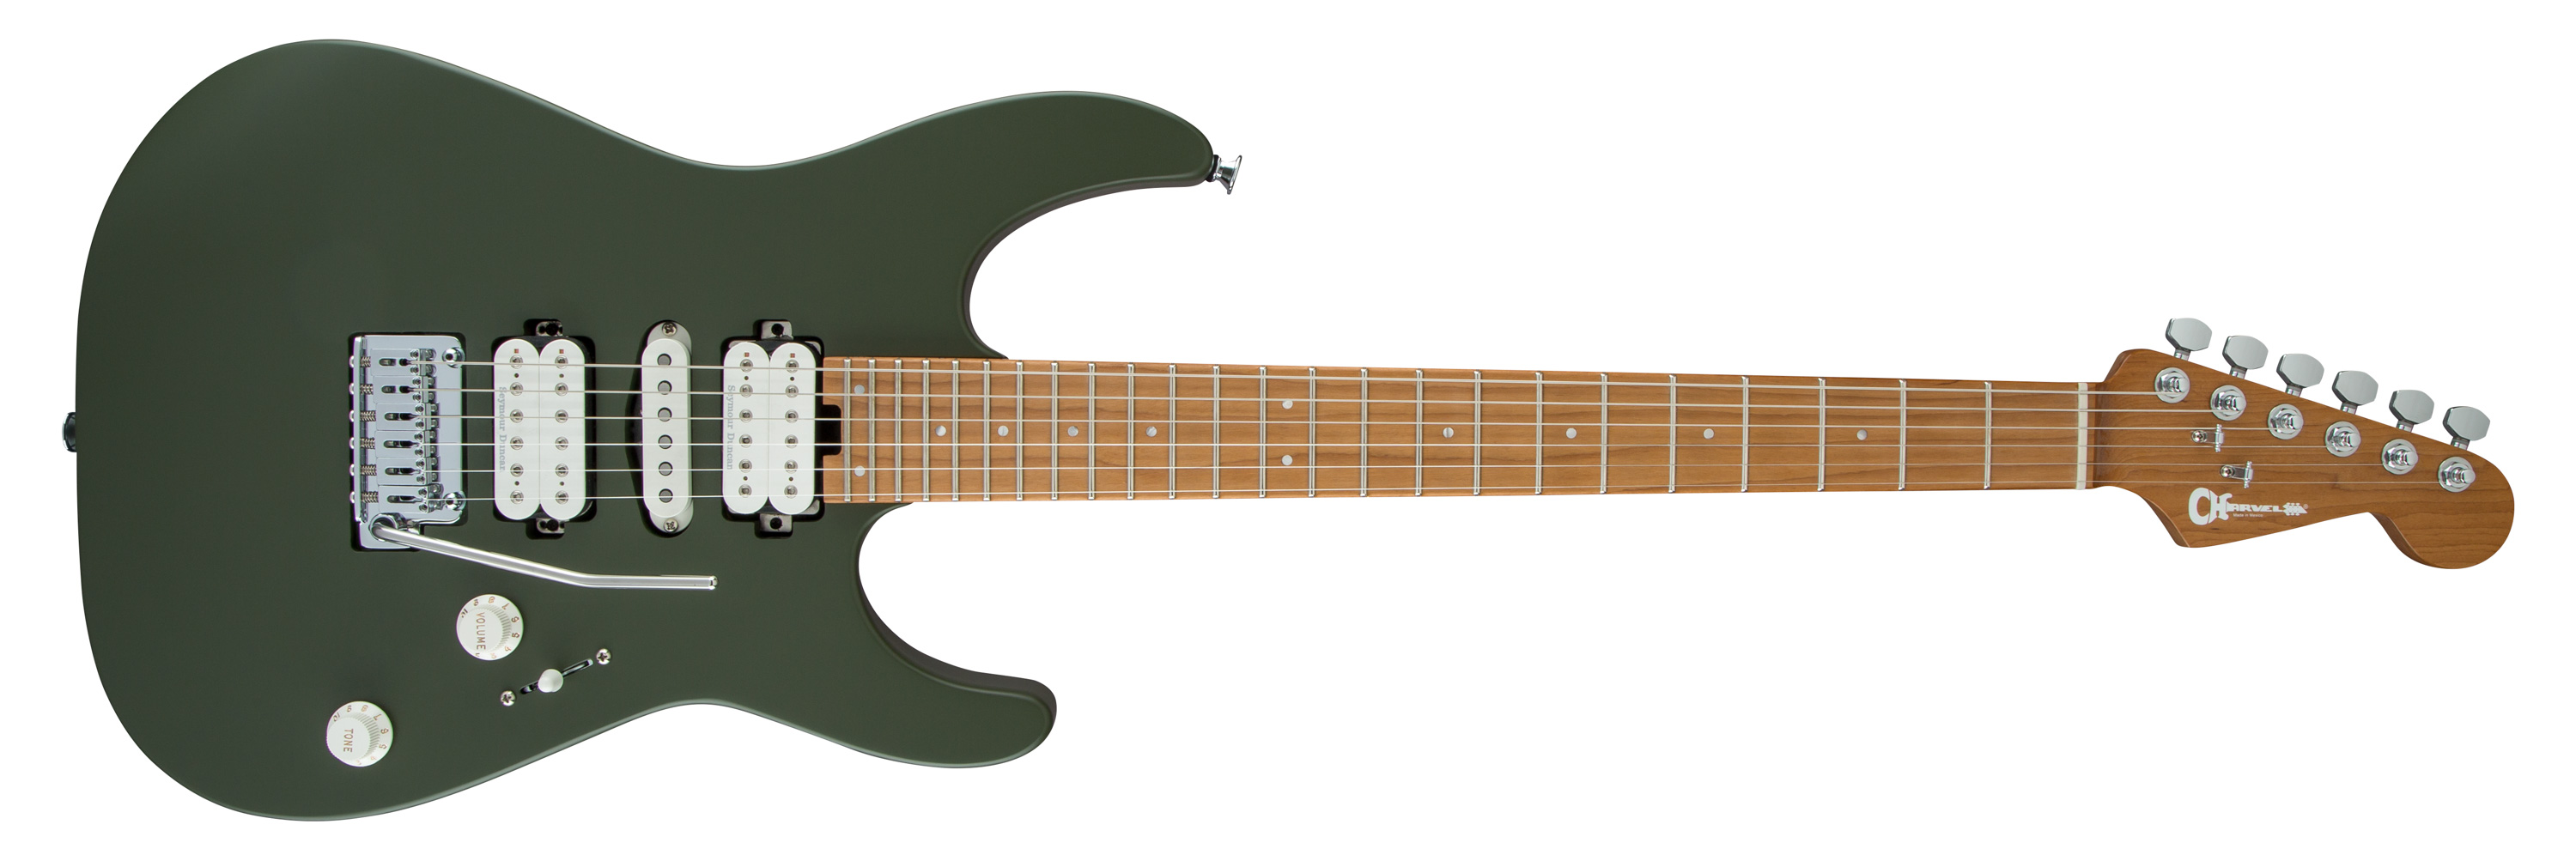 Charvel Pro-Mod DK24 HSH in Matte Army Drab